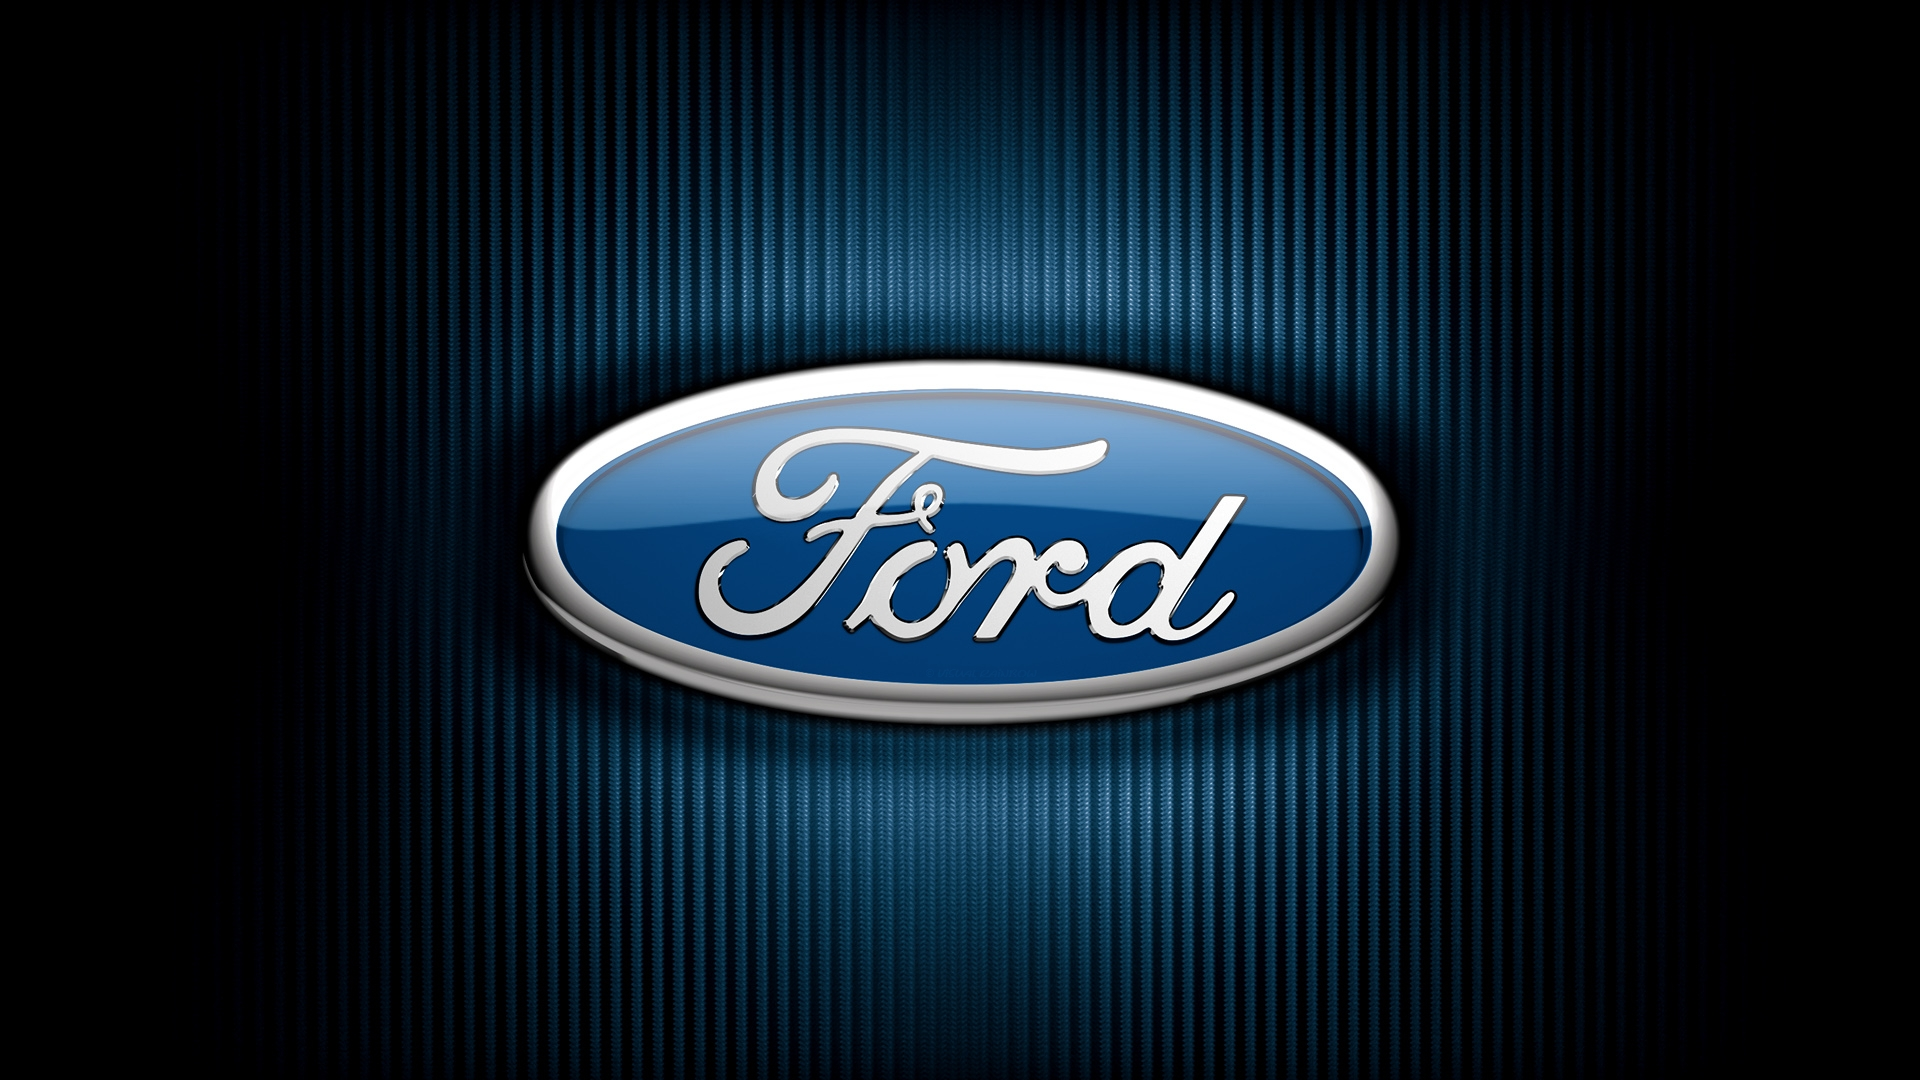 Ford Logo Background